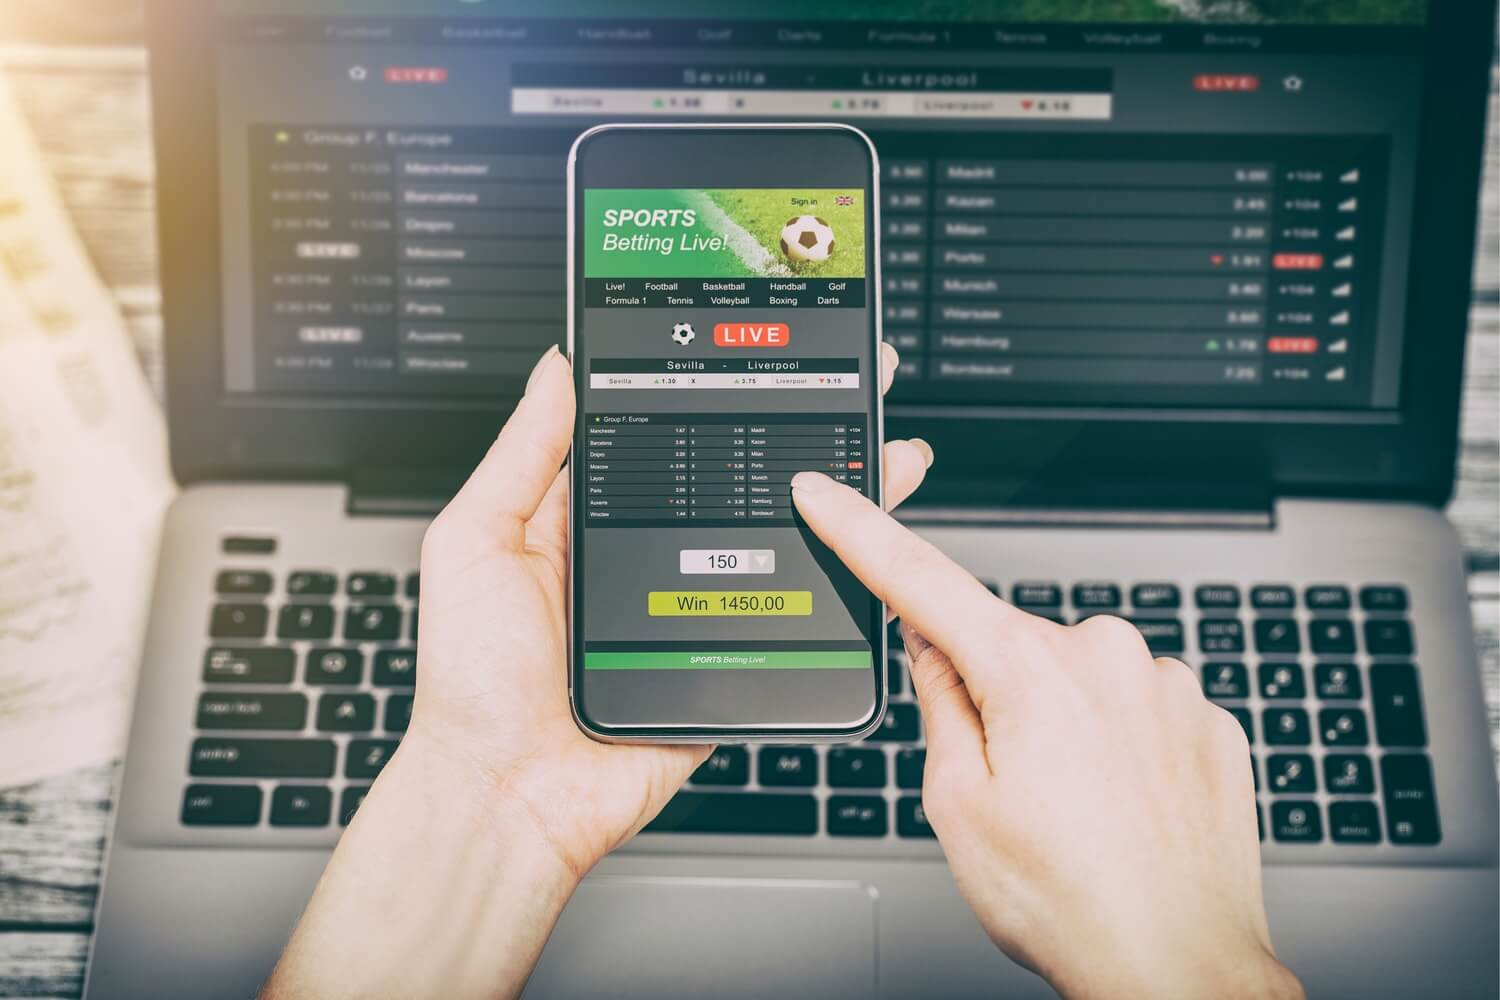 Learn about Live betting